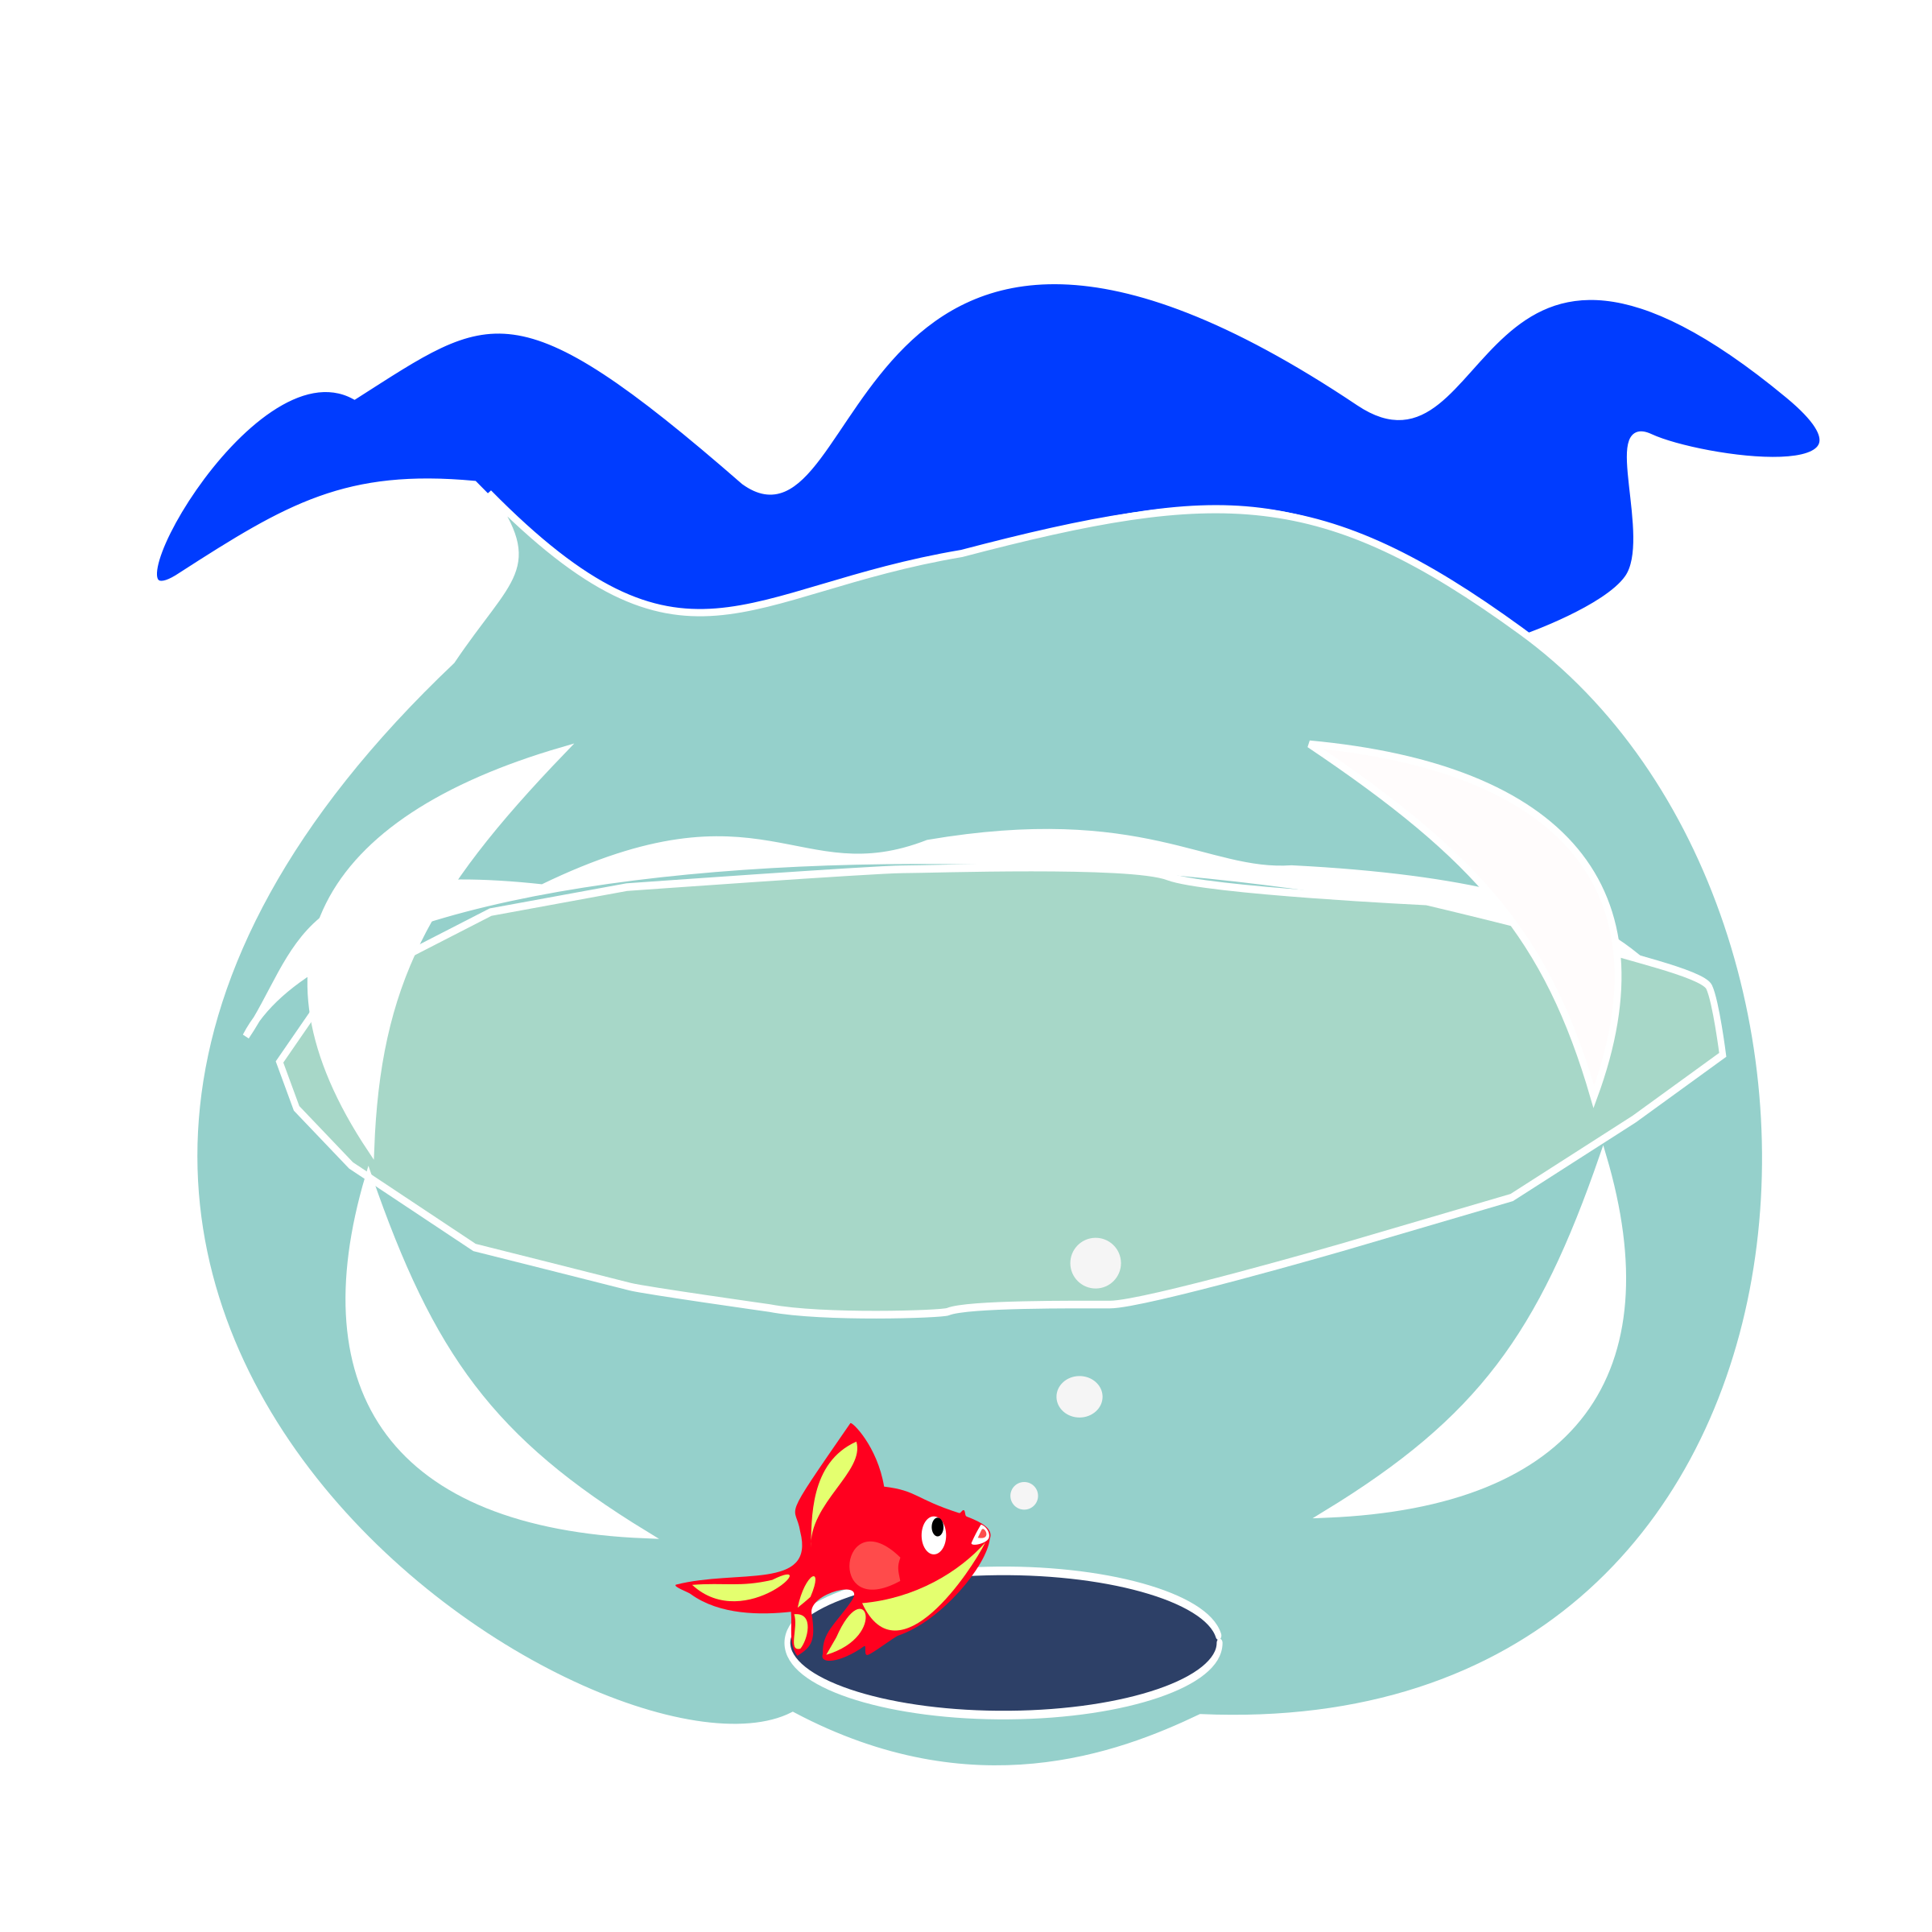 Fishbowl clipart home. Goldfish in big image